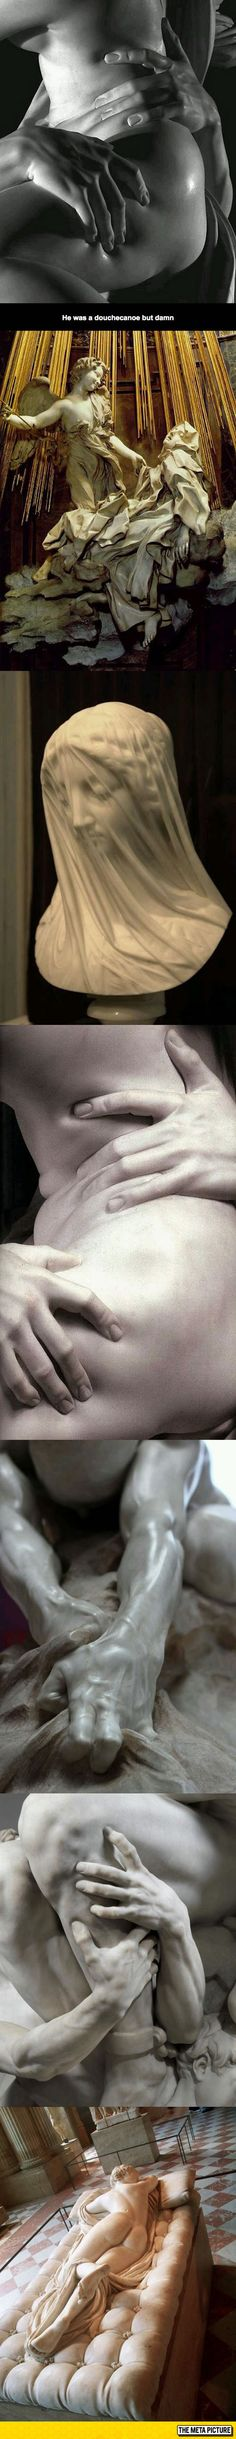 Sculptor Gian Lorenzo Bernini Did All This Using Marble In The 17th Century